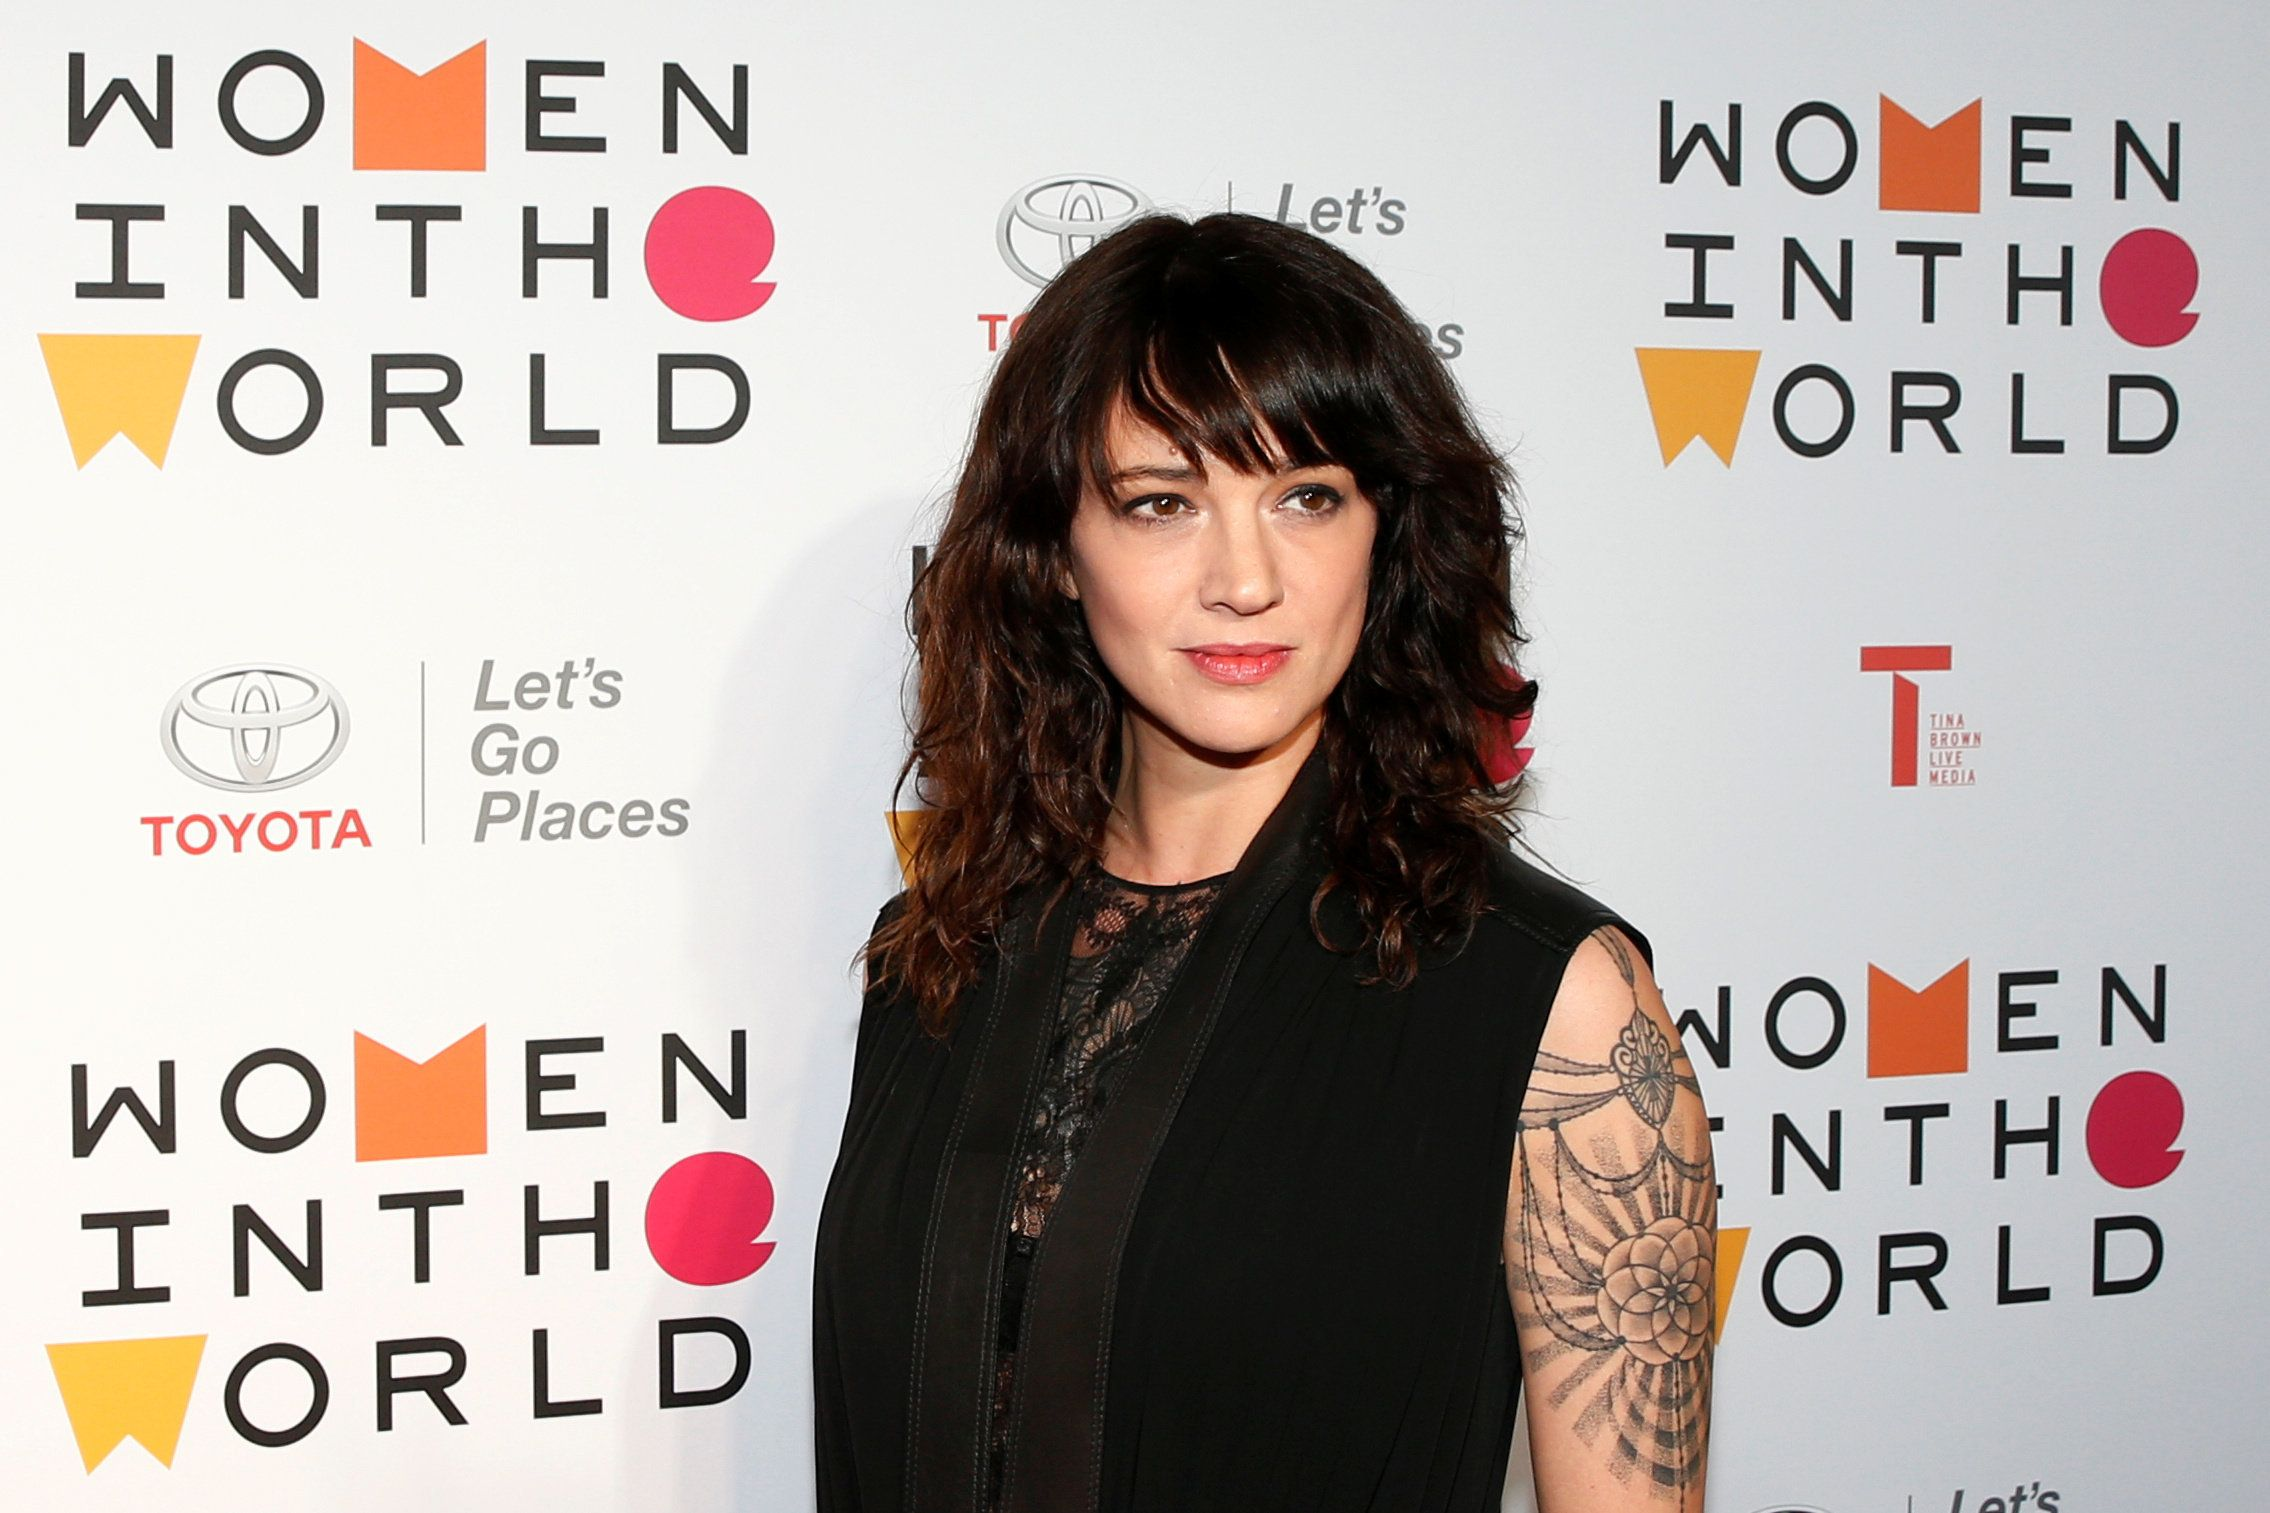 Asia Argento has been accused of paying a large settlement to an actor after allegedly sexually assaulting him when he was 17